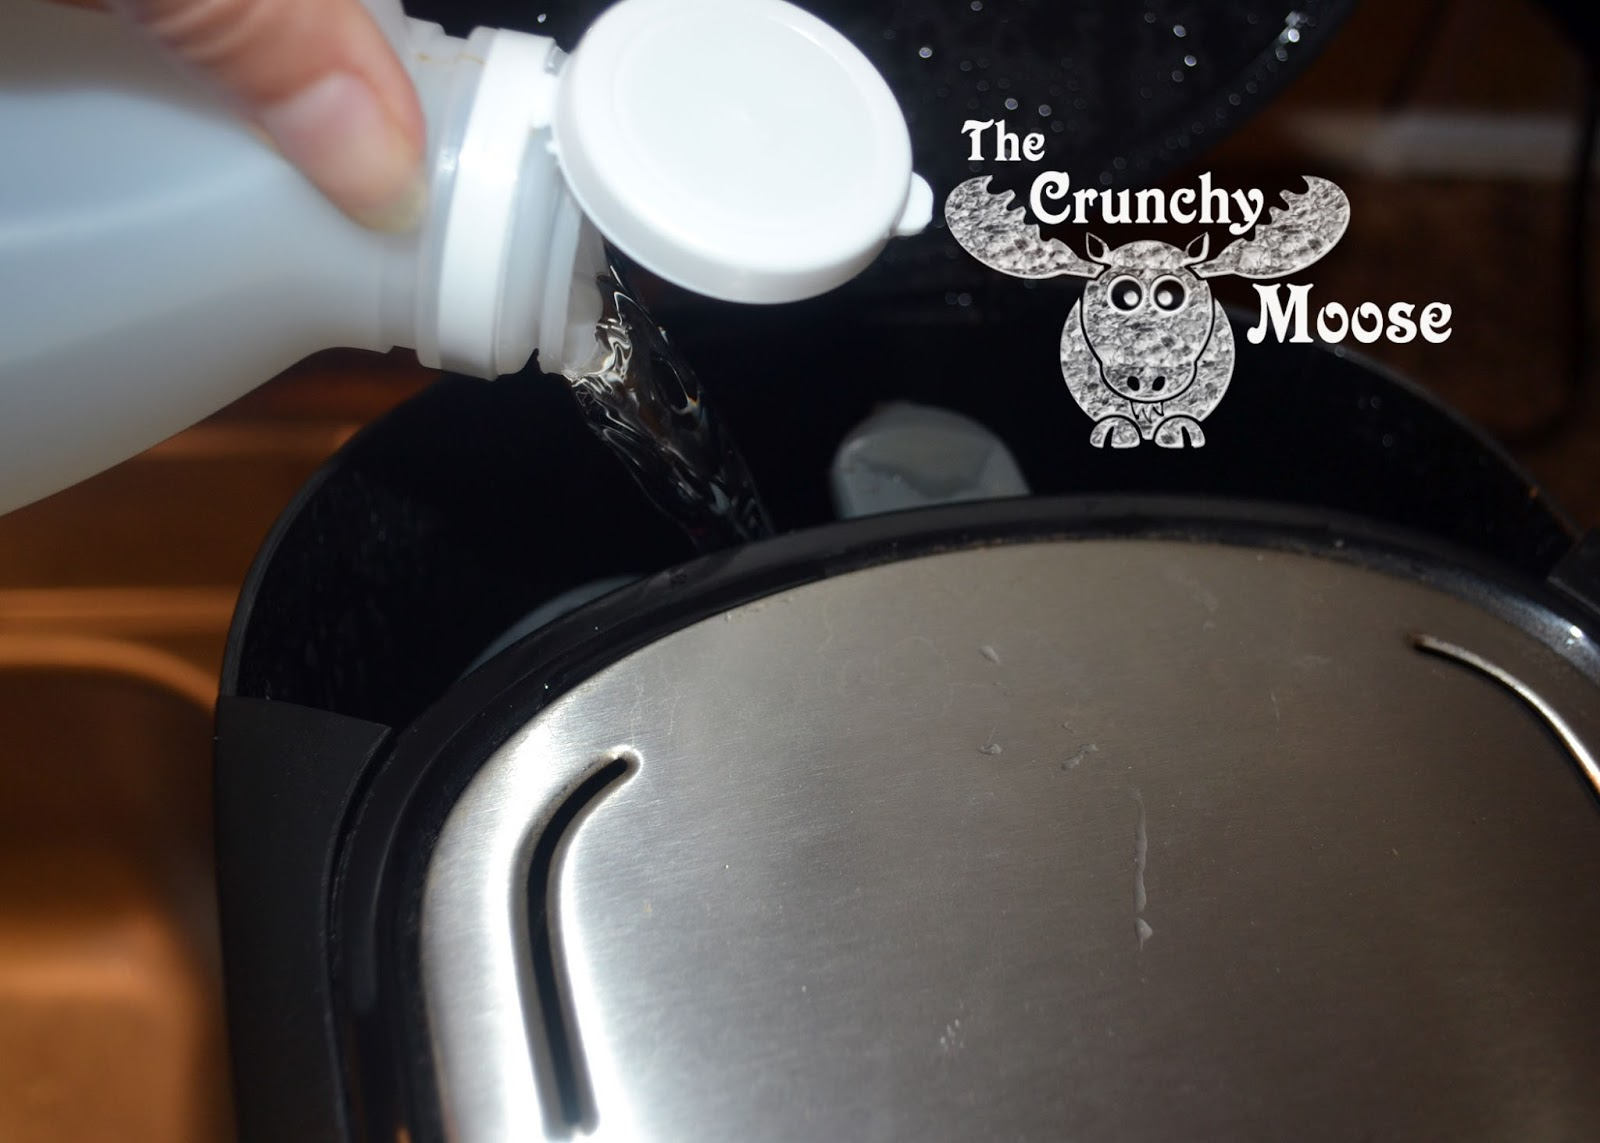 The Crunchy Moose: Cleaning Your Coffee Pot